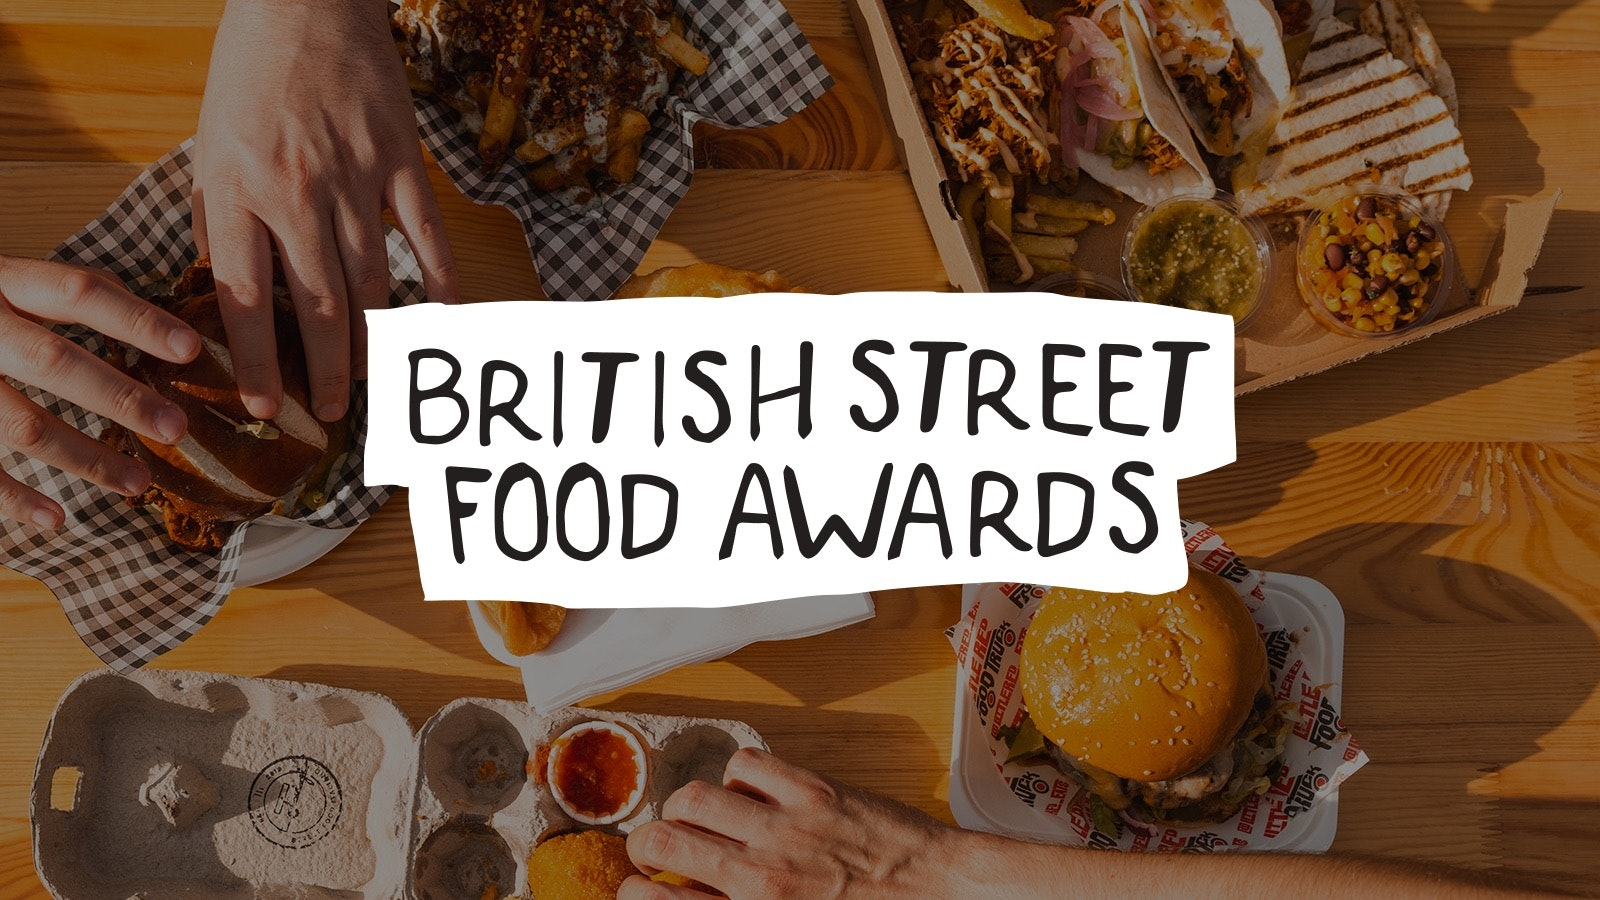 Chow Down: Friday 20th August – 2 HOUR SESSION – British Street Food Awards Week